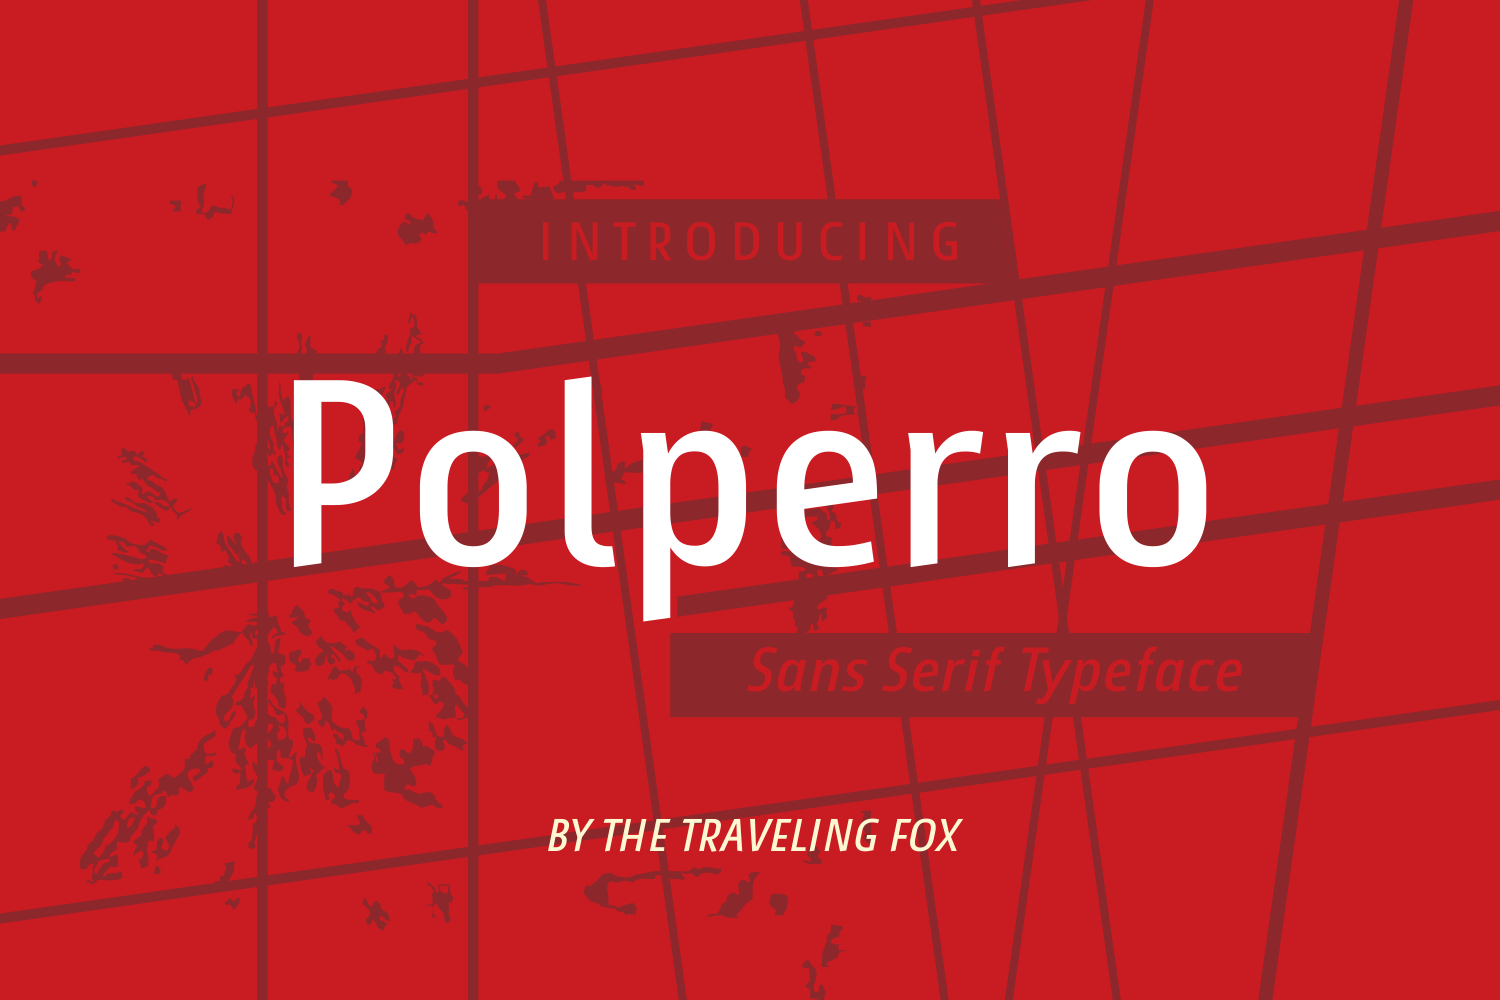 Polperro Font By The Traveling Fox Image 2